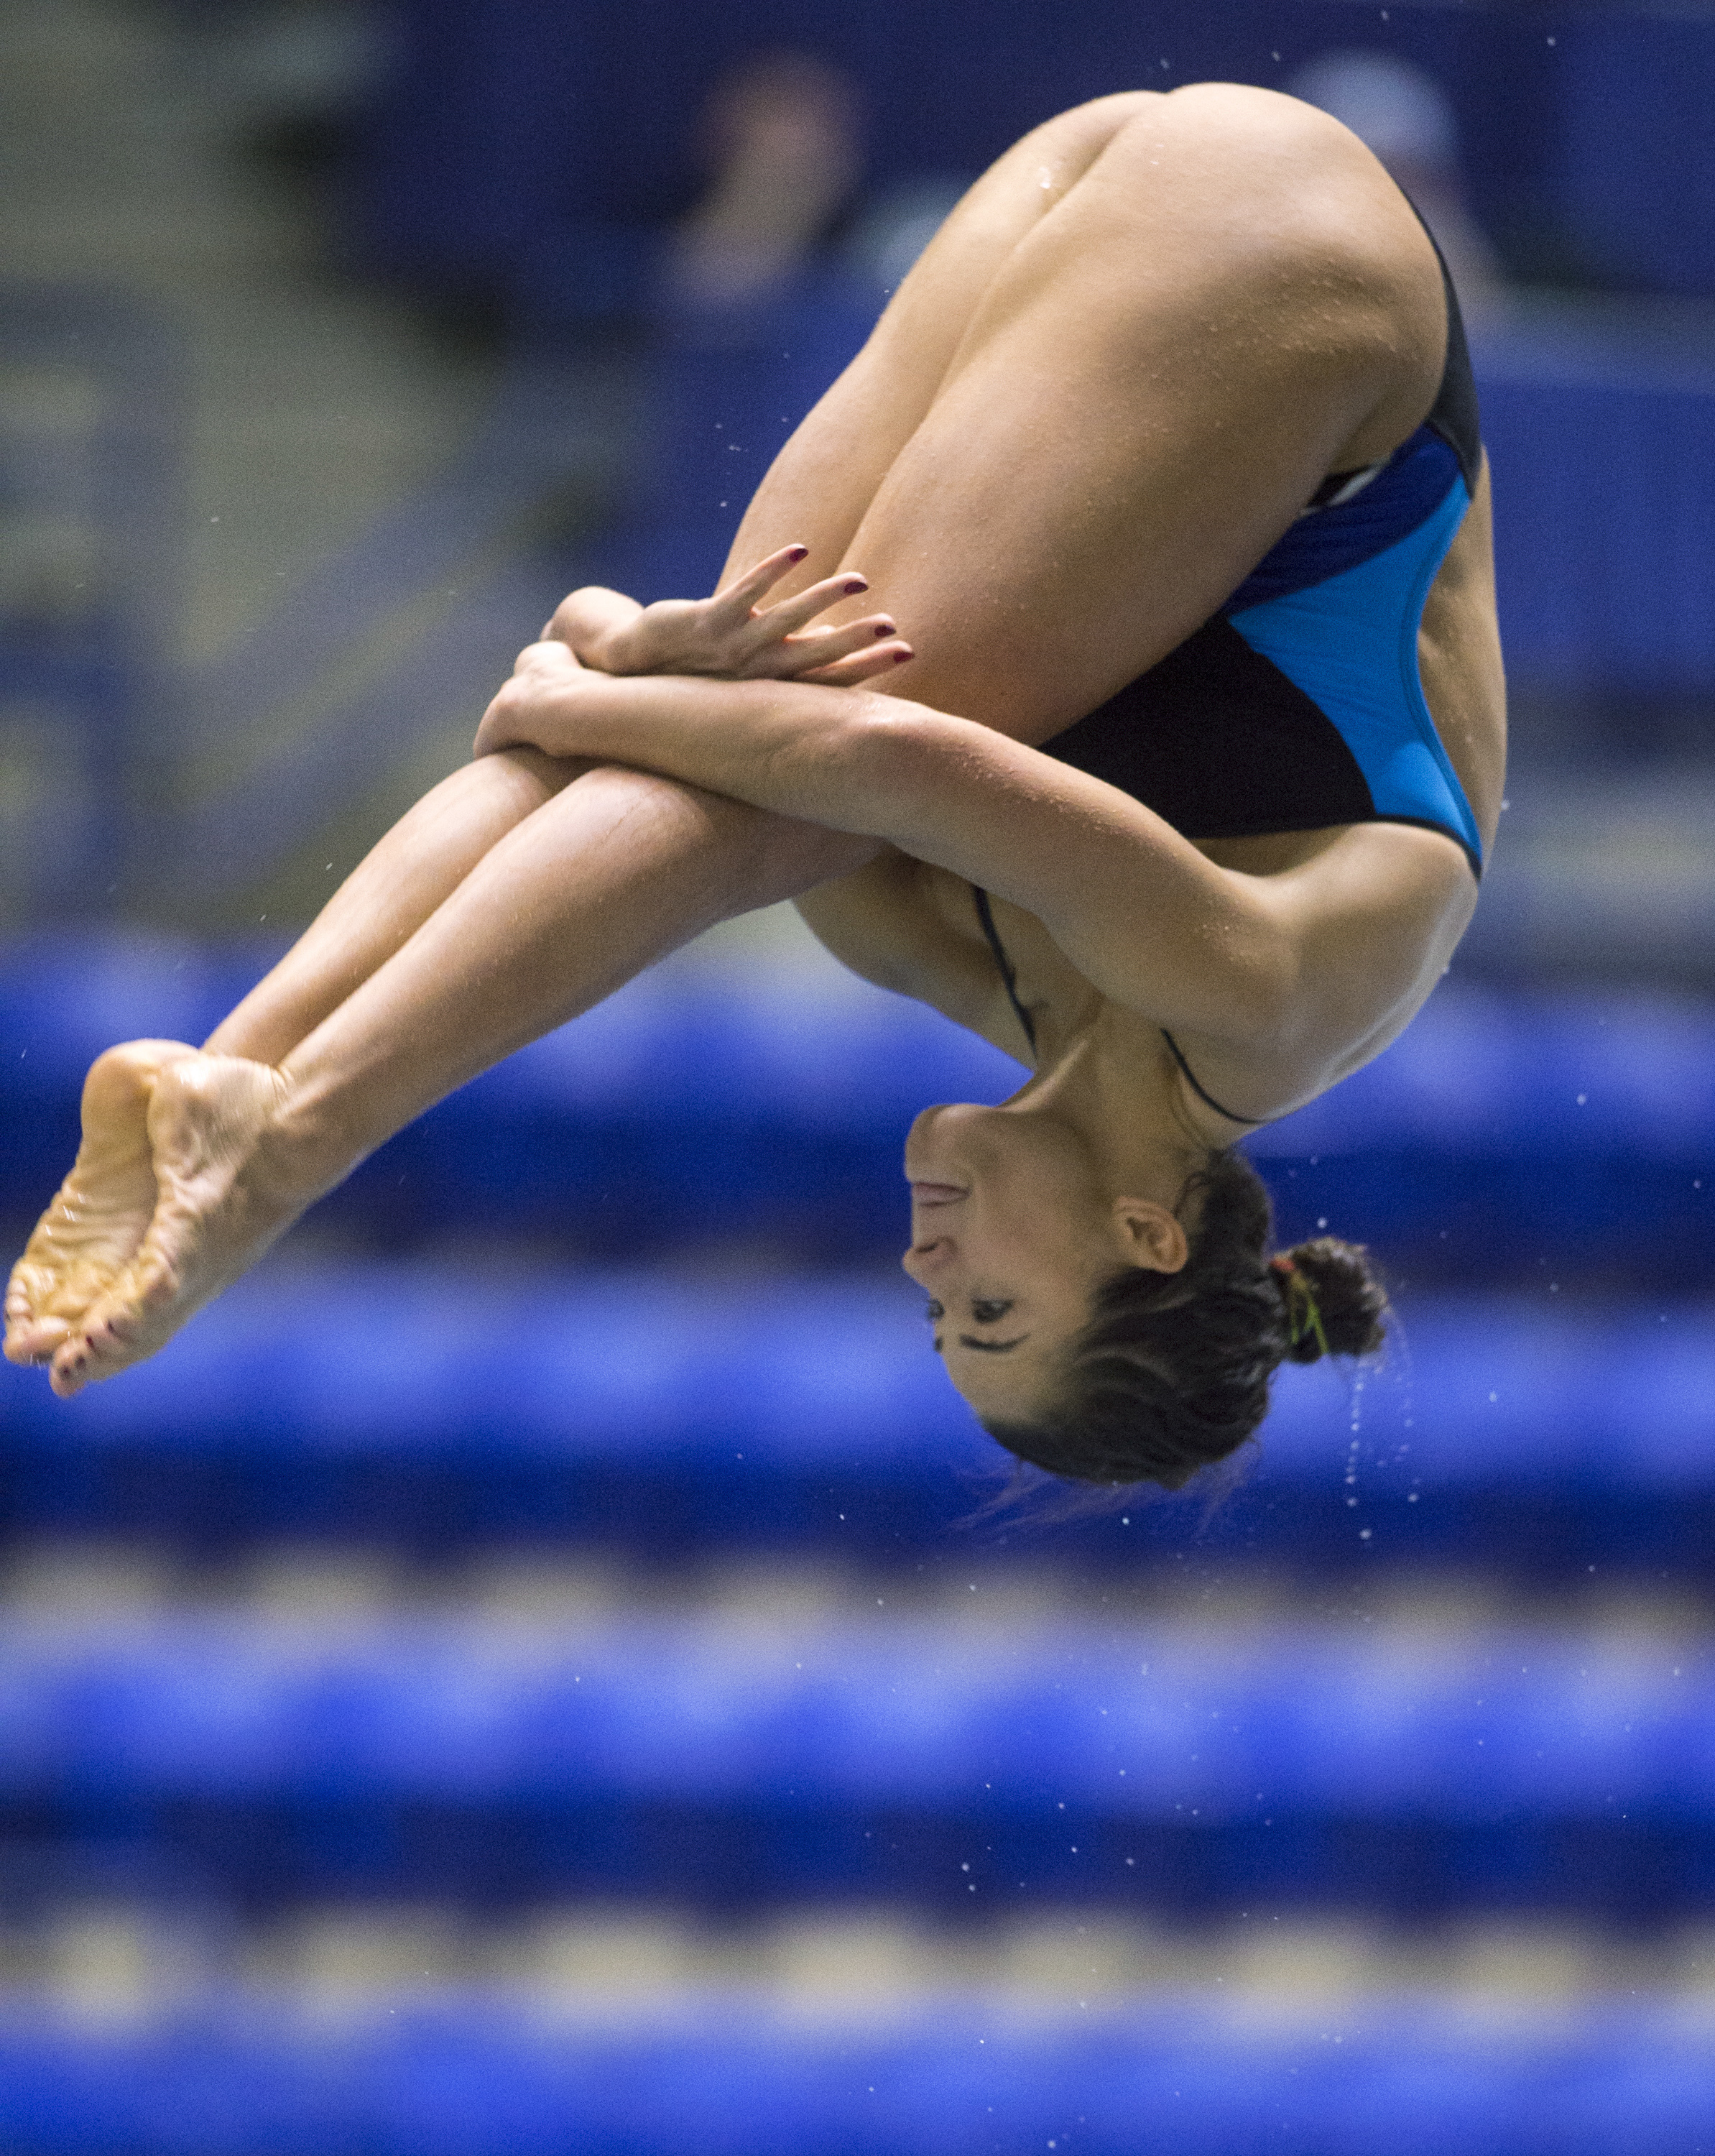 FILE - In this Dec. 20, 2015, file photo, Kassidy Cook competes during the USA Diving Winter National Championship's women's 3-meter finals in Indianapolis. Four years after her synchro 3-meter team had just missed out on making the American team, Cook is